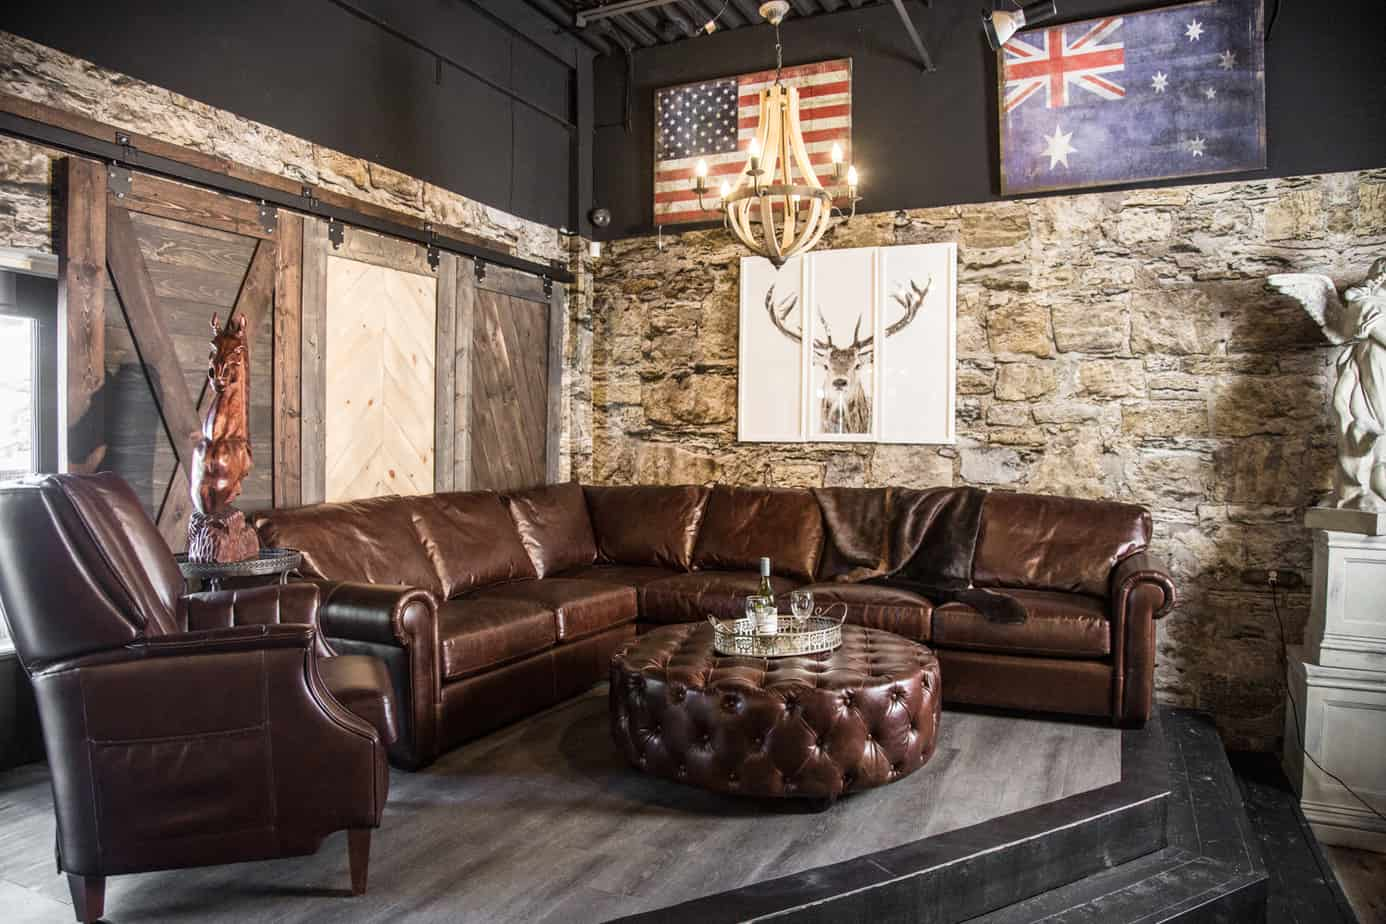 Canadas boss leather furniture carries a broad selection of leather sectional sofas including modern traditional and transitional genuine top grain